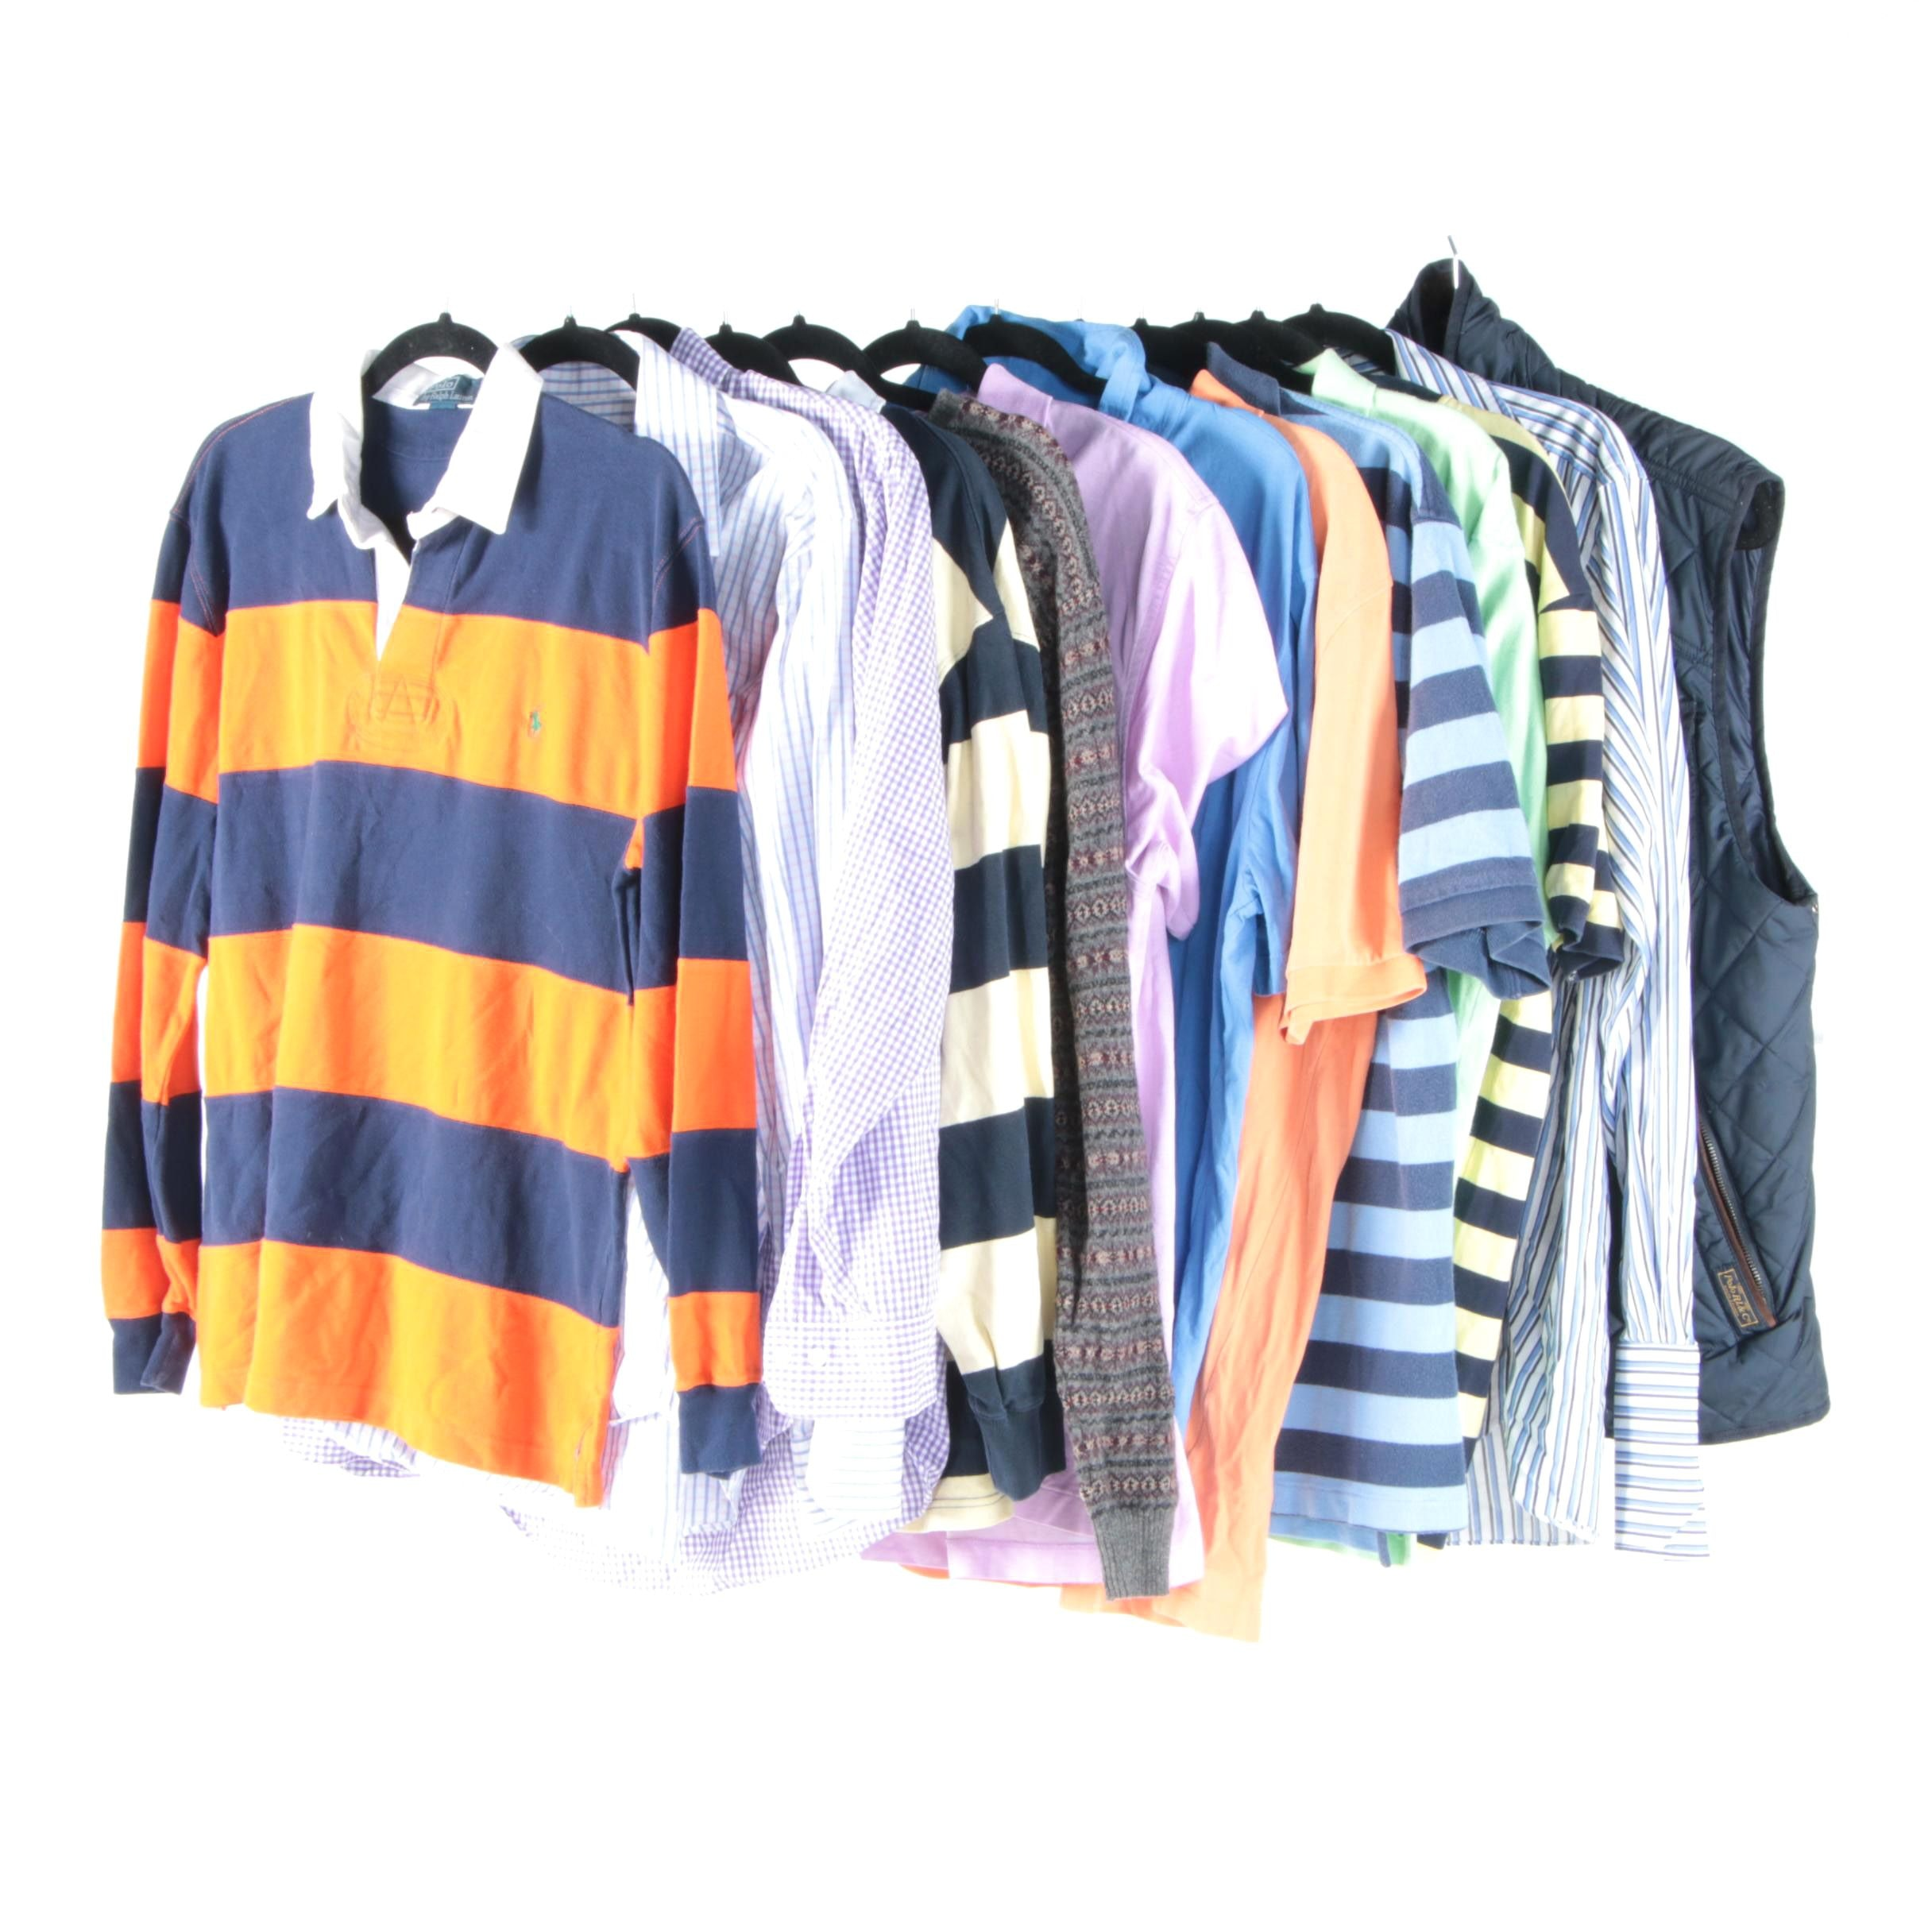 Men's Shirts and Vest Including Polo by Ralph Lauren and Brooks Brothers